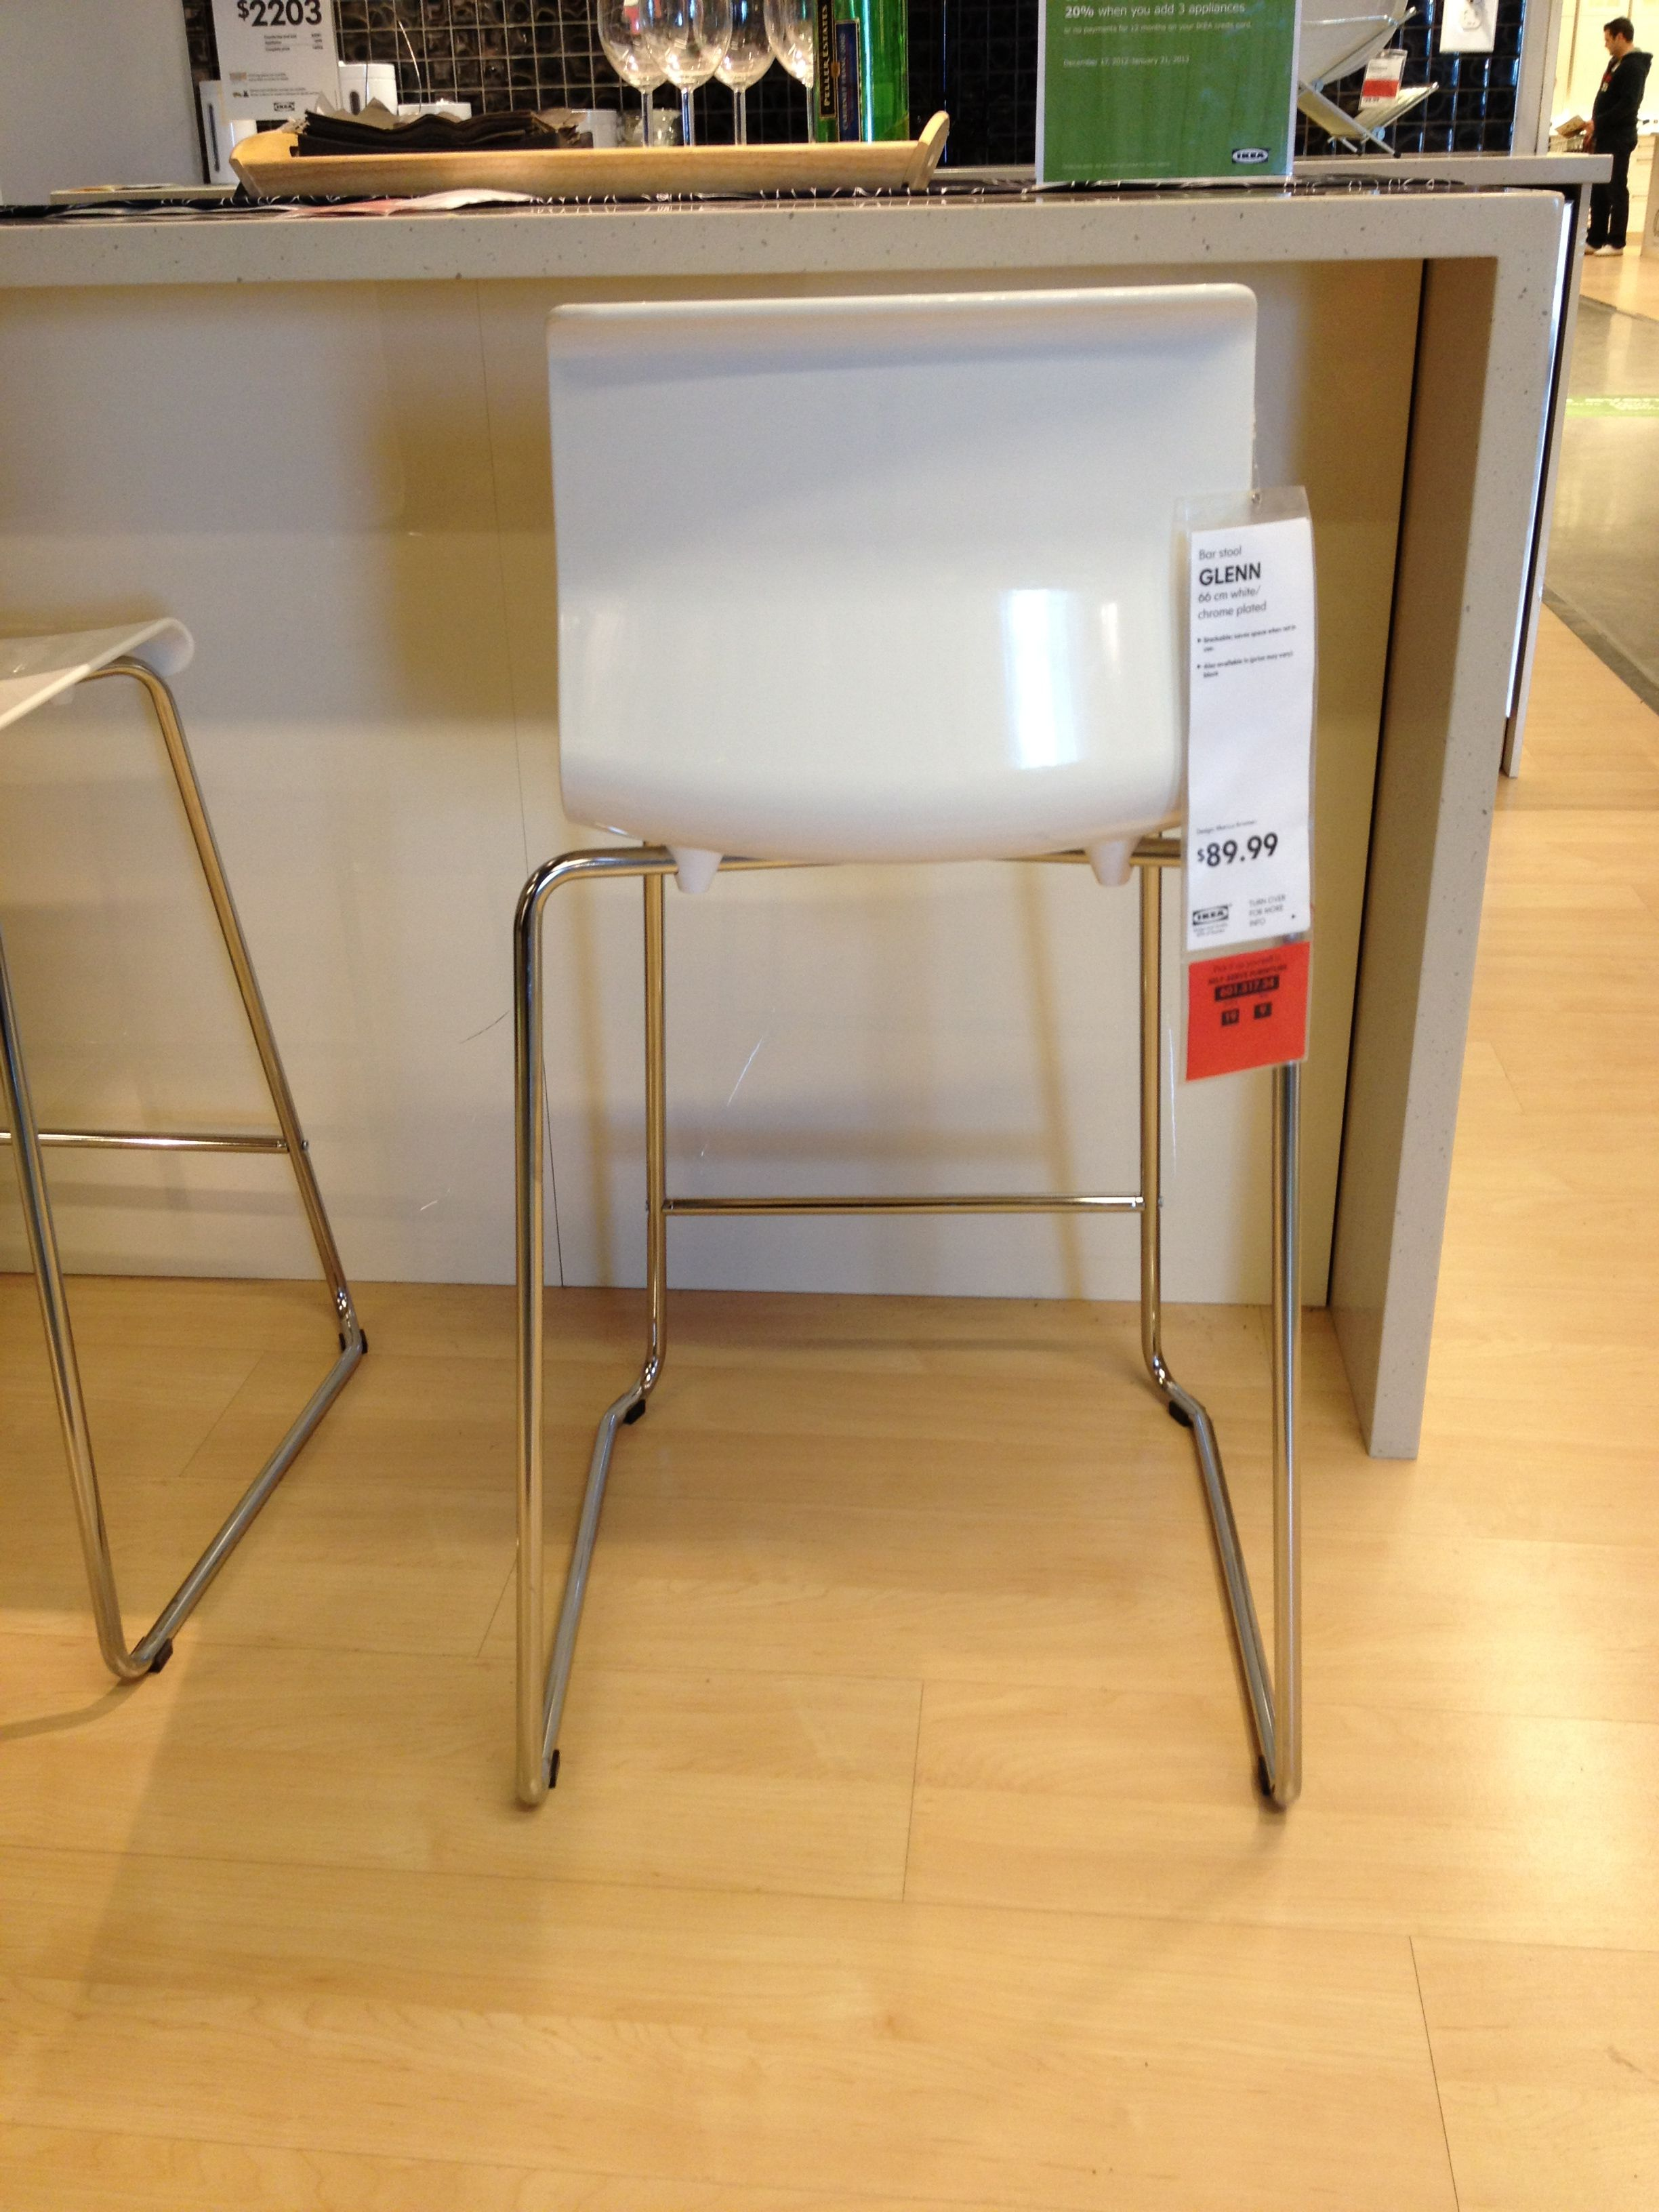 Pleasing Ikea Glenn Bar Stool 66Cm 89 99 Bar Stools Ikea Home Gmtry Best Dining Table And Chair Ideas Images Gmtryco